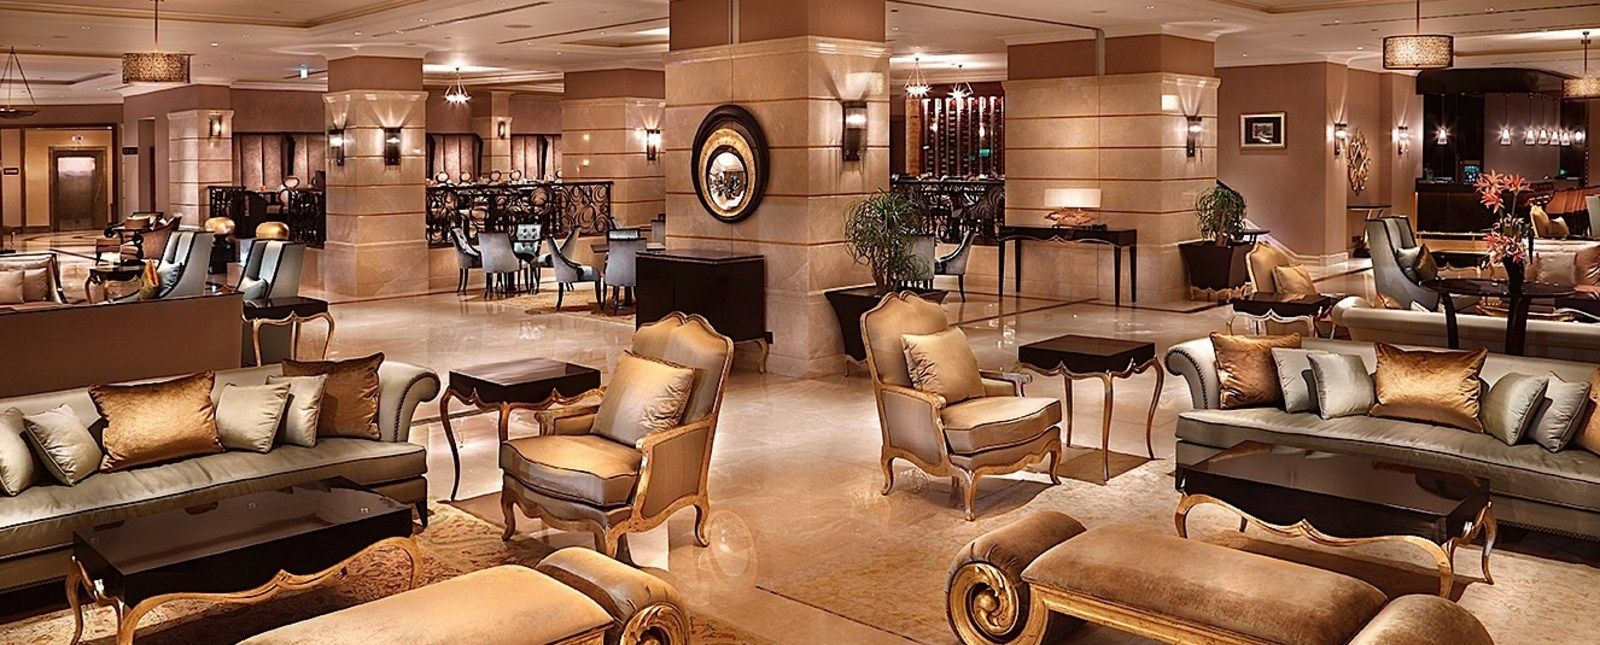 The Divan Hotel In Turkey Is Adorned With Gorgeous Furnishings From  Christopher Guy. LOBBY